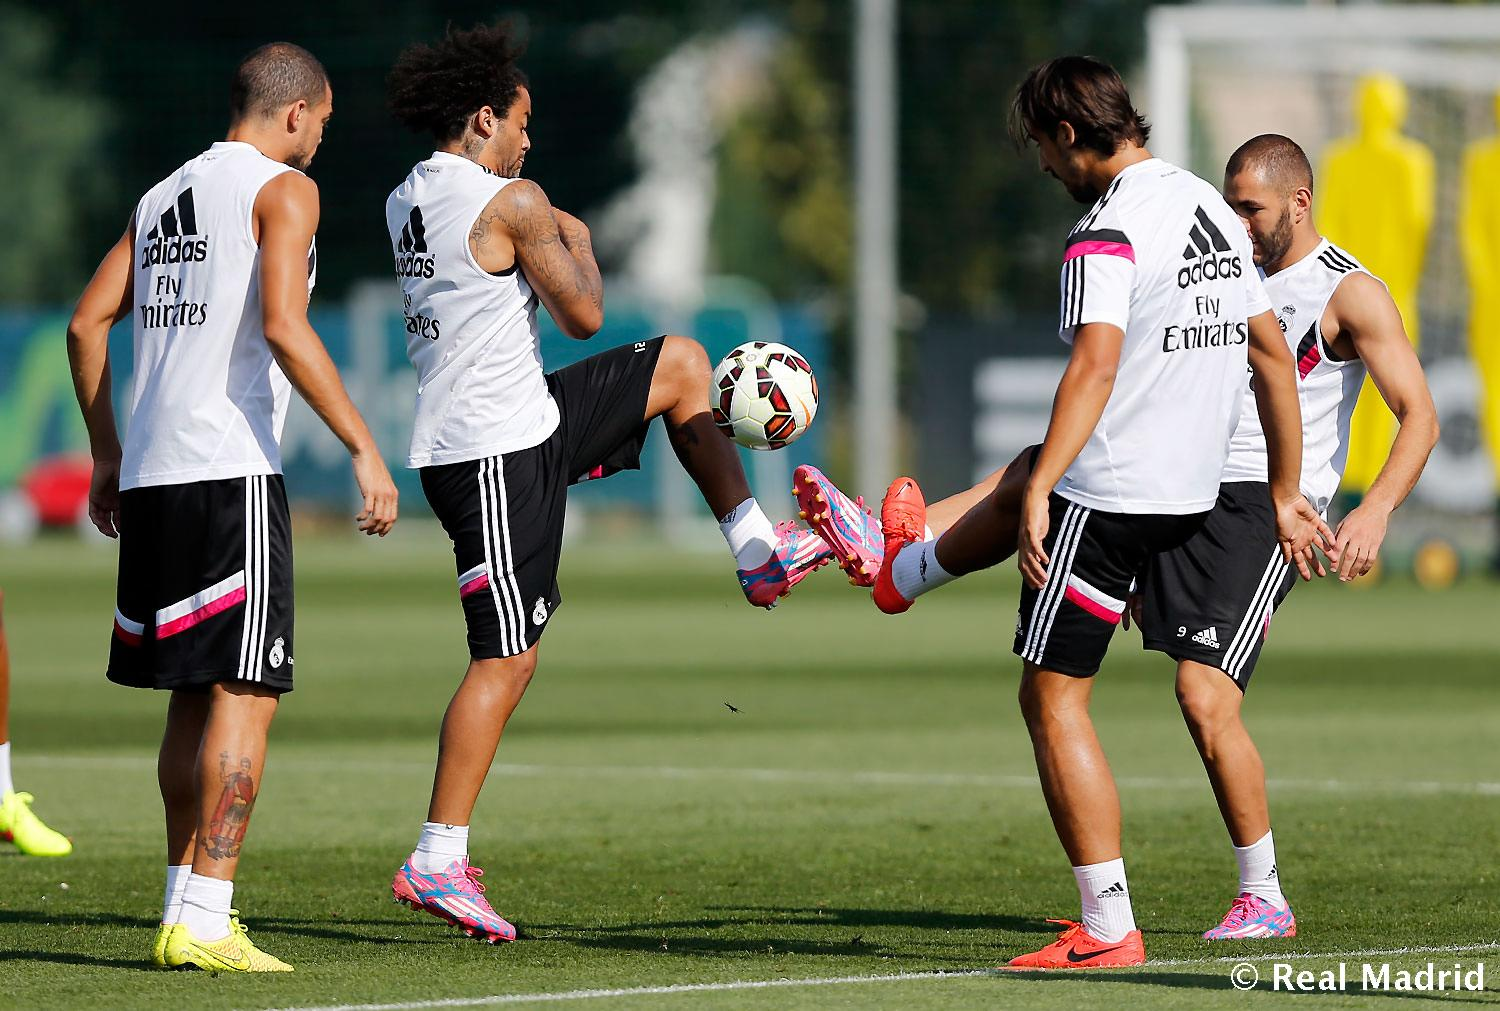 Real Madrid - Entrenamiento del Real Madrid - 30-08-2014